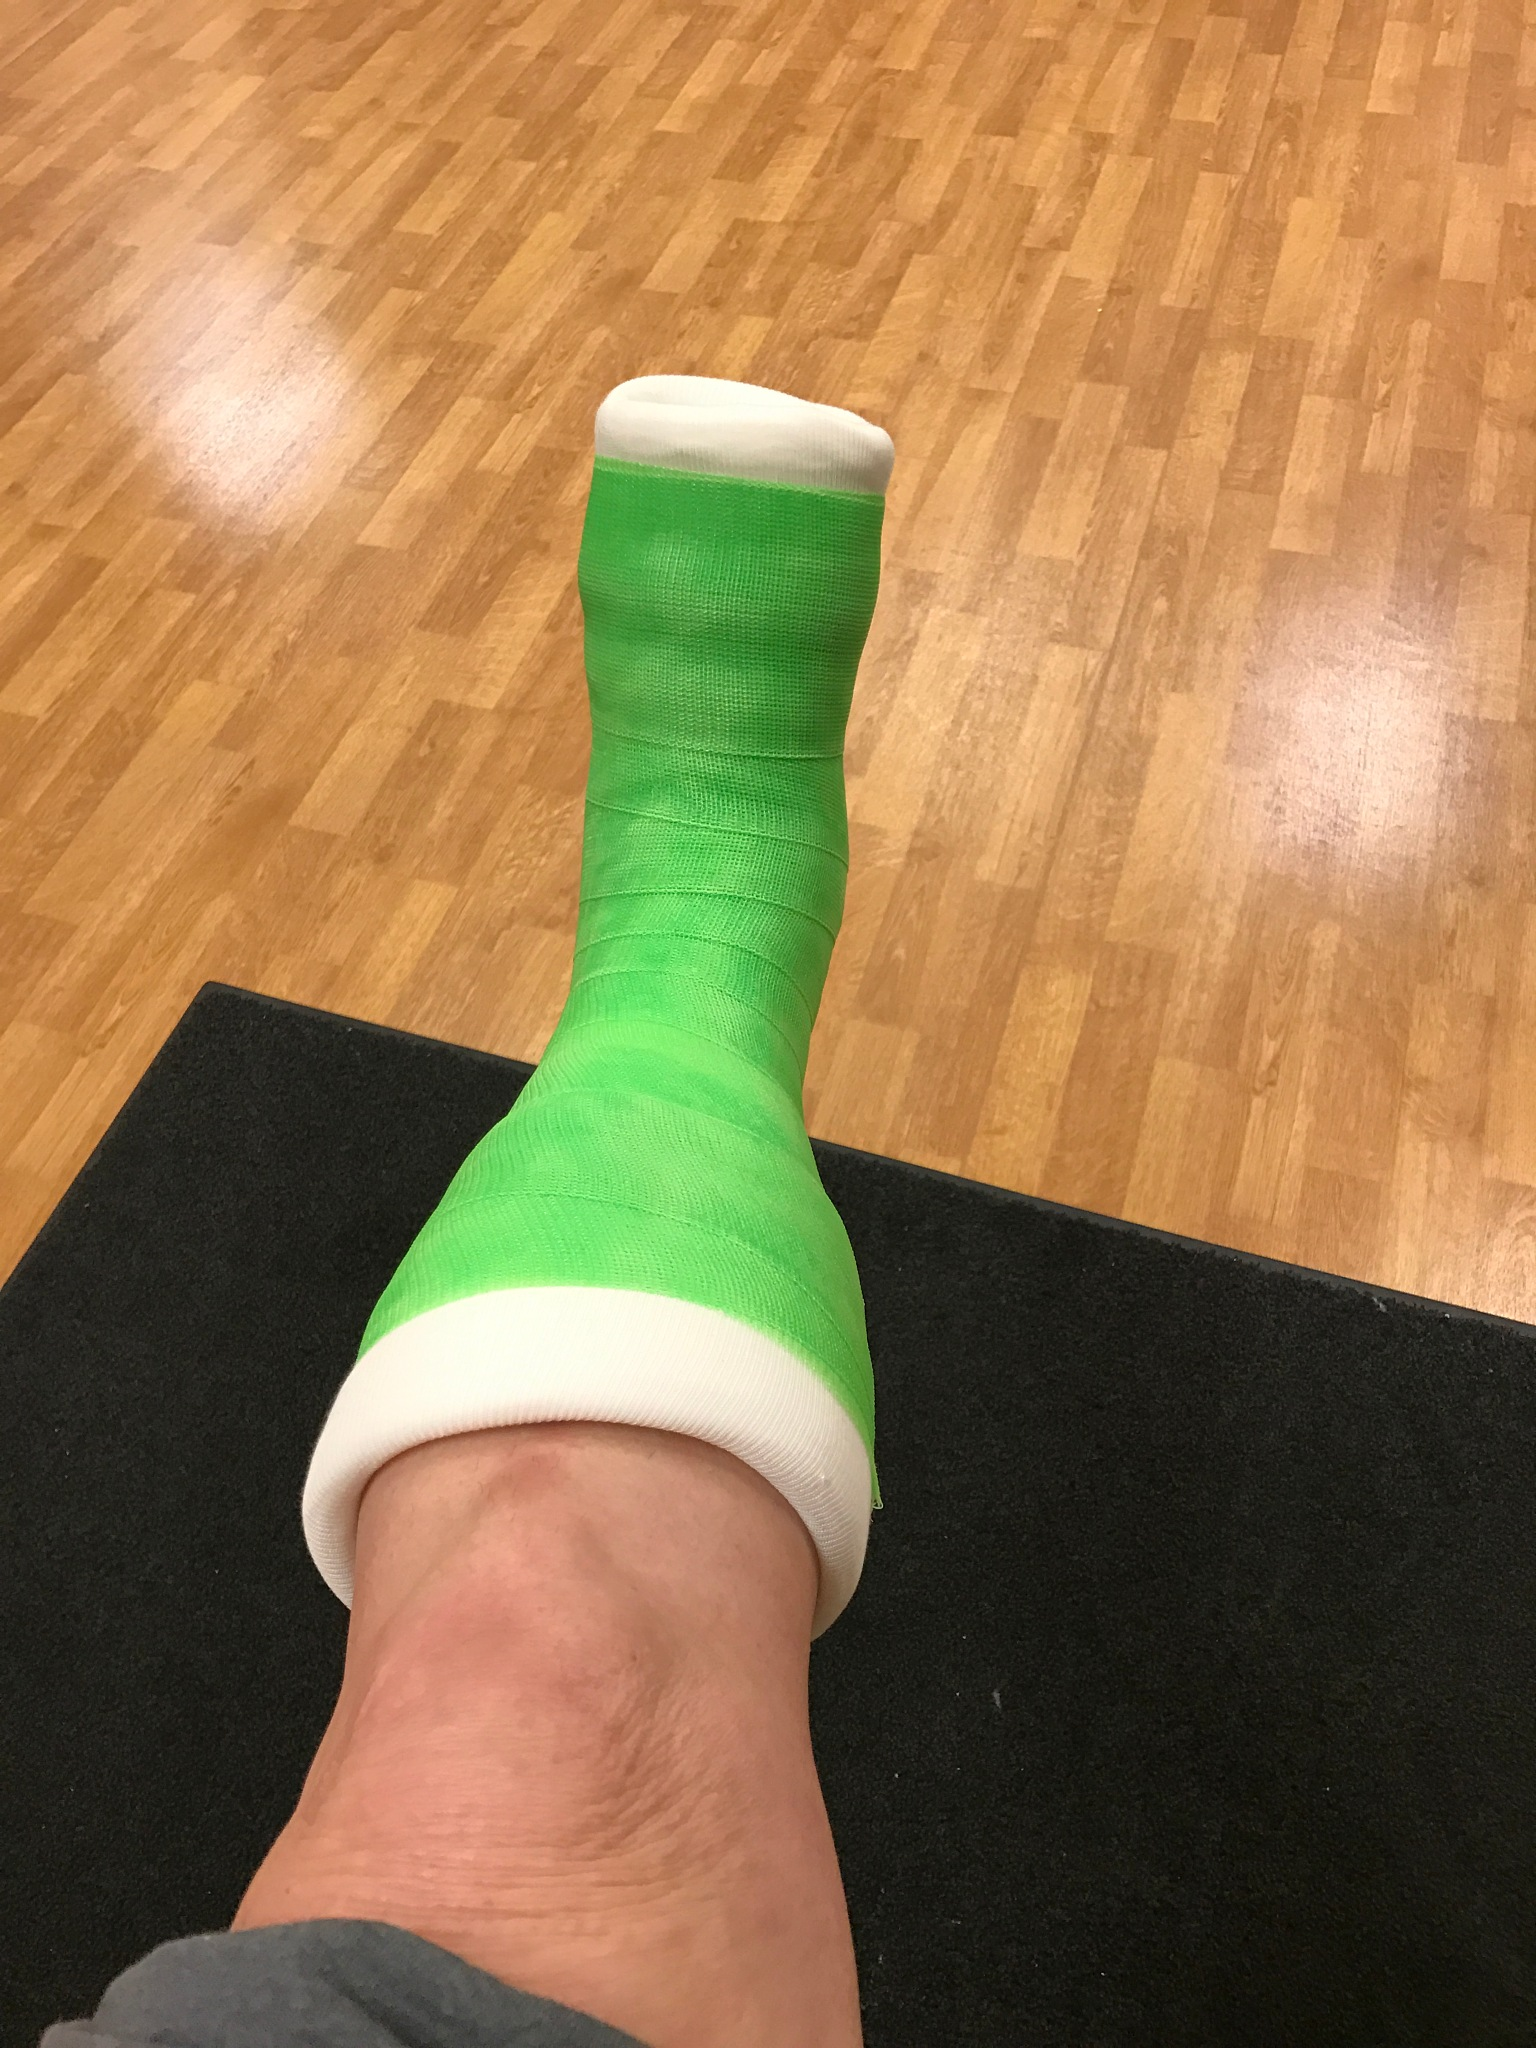 My beautiful lime green cast by Marilyn S. Martin